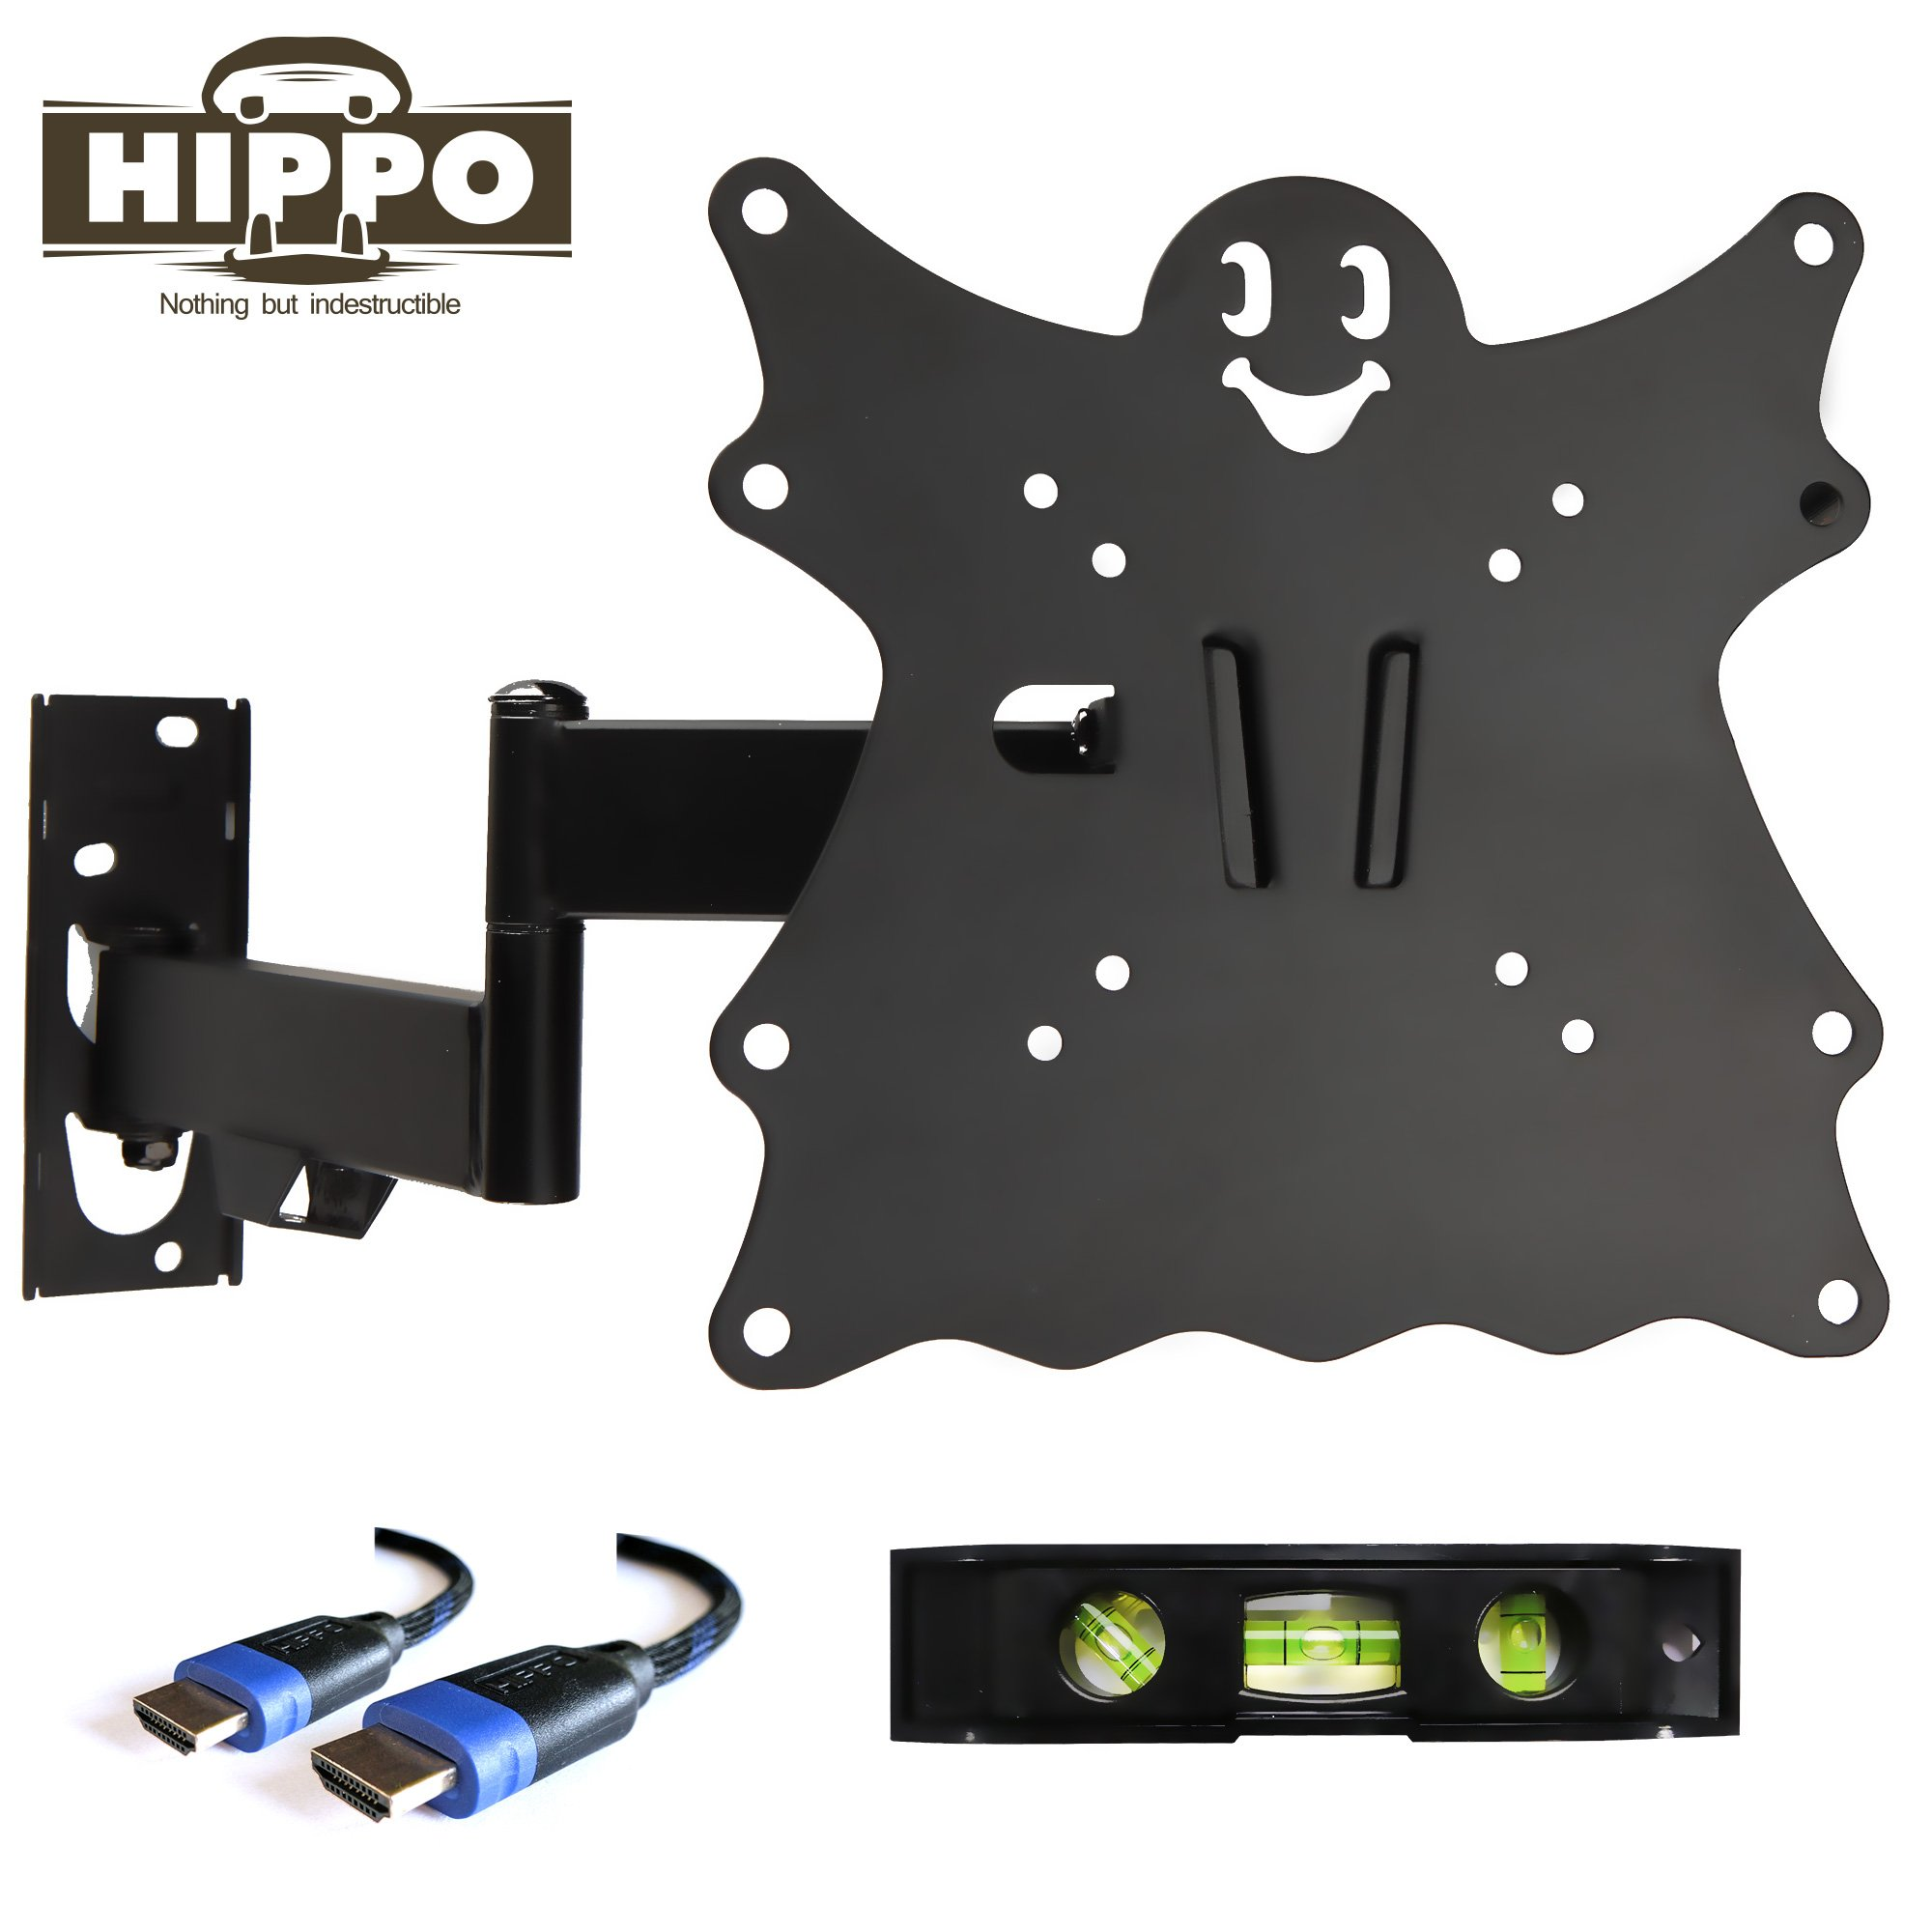 HIPPO TV Wall Mount Bracket for 15'' 17'' 19'' 20'' 22'' 23'' 24'' 26'' 27'' 28'' LED LCD OLED Plasma Screen up to 55 lbs VESA 200x200 5ft HDMI Cable